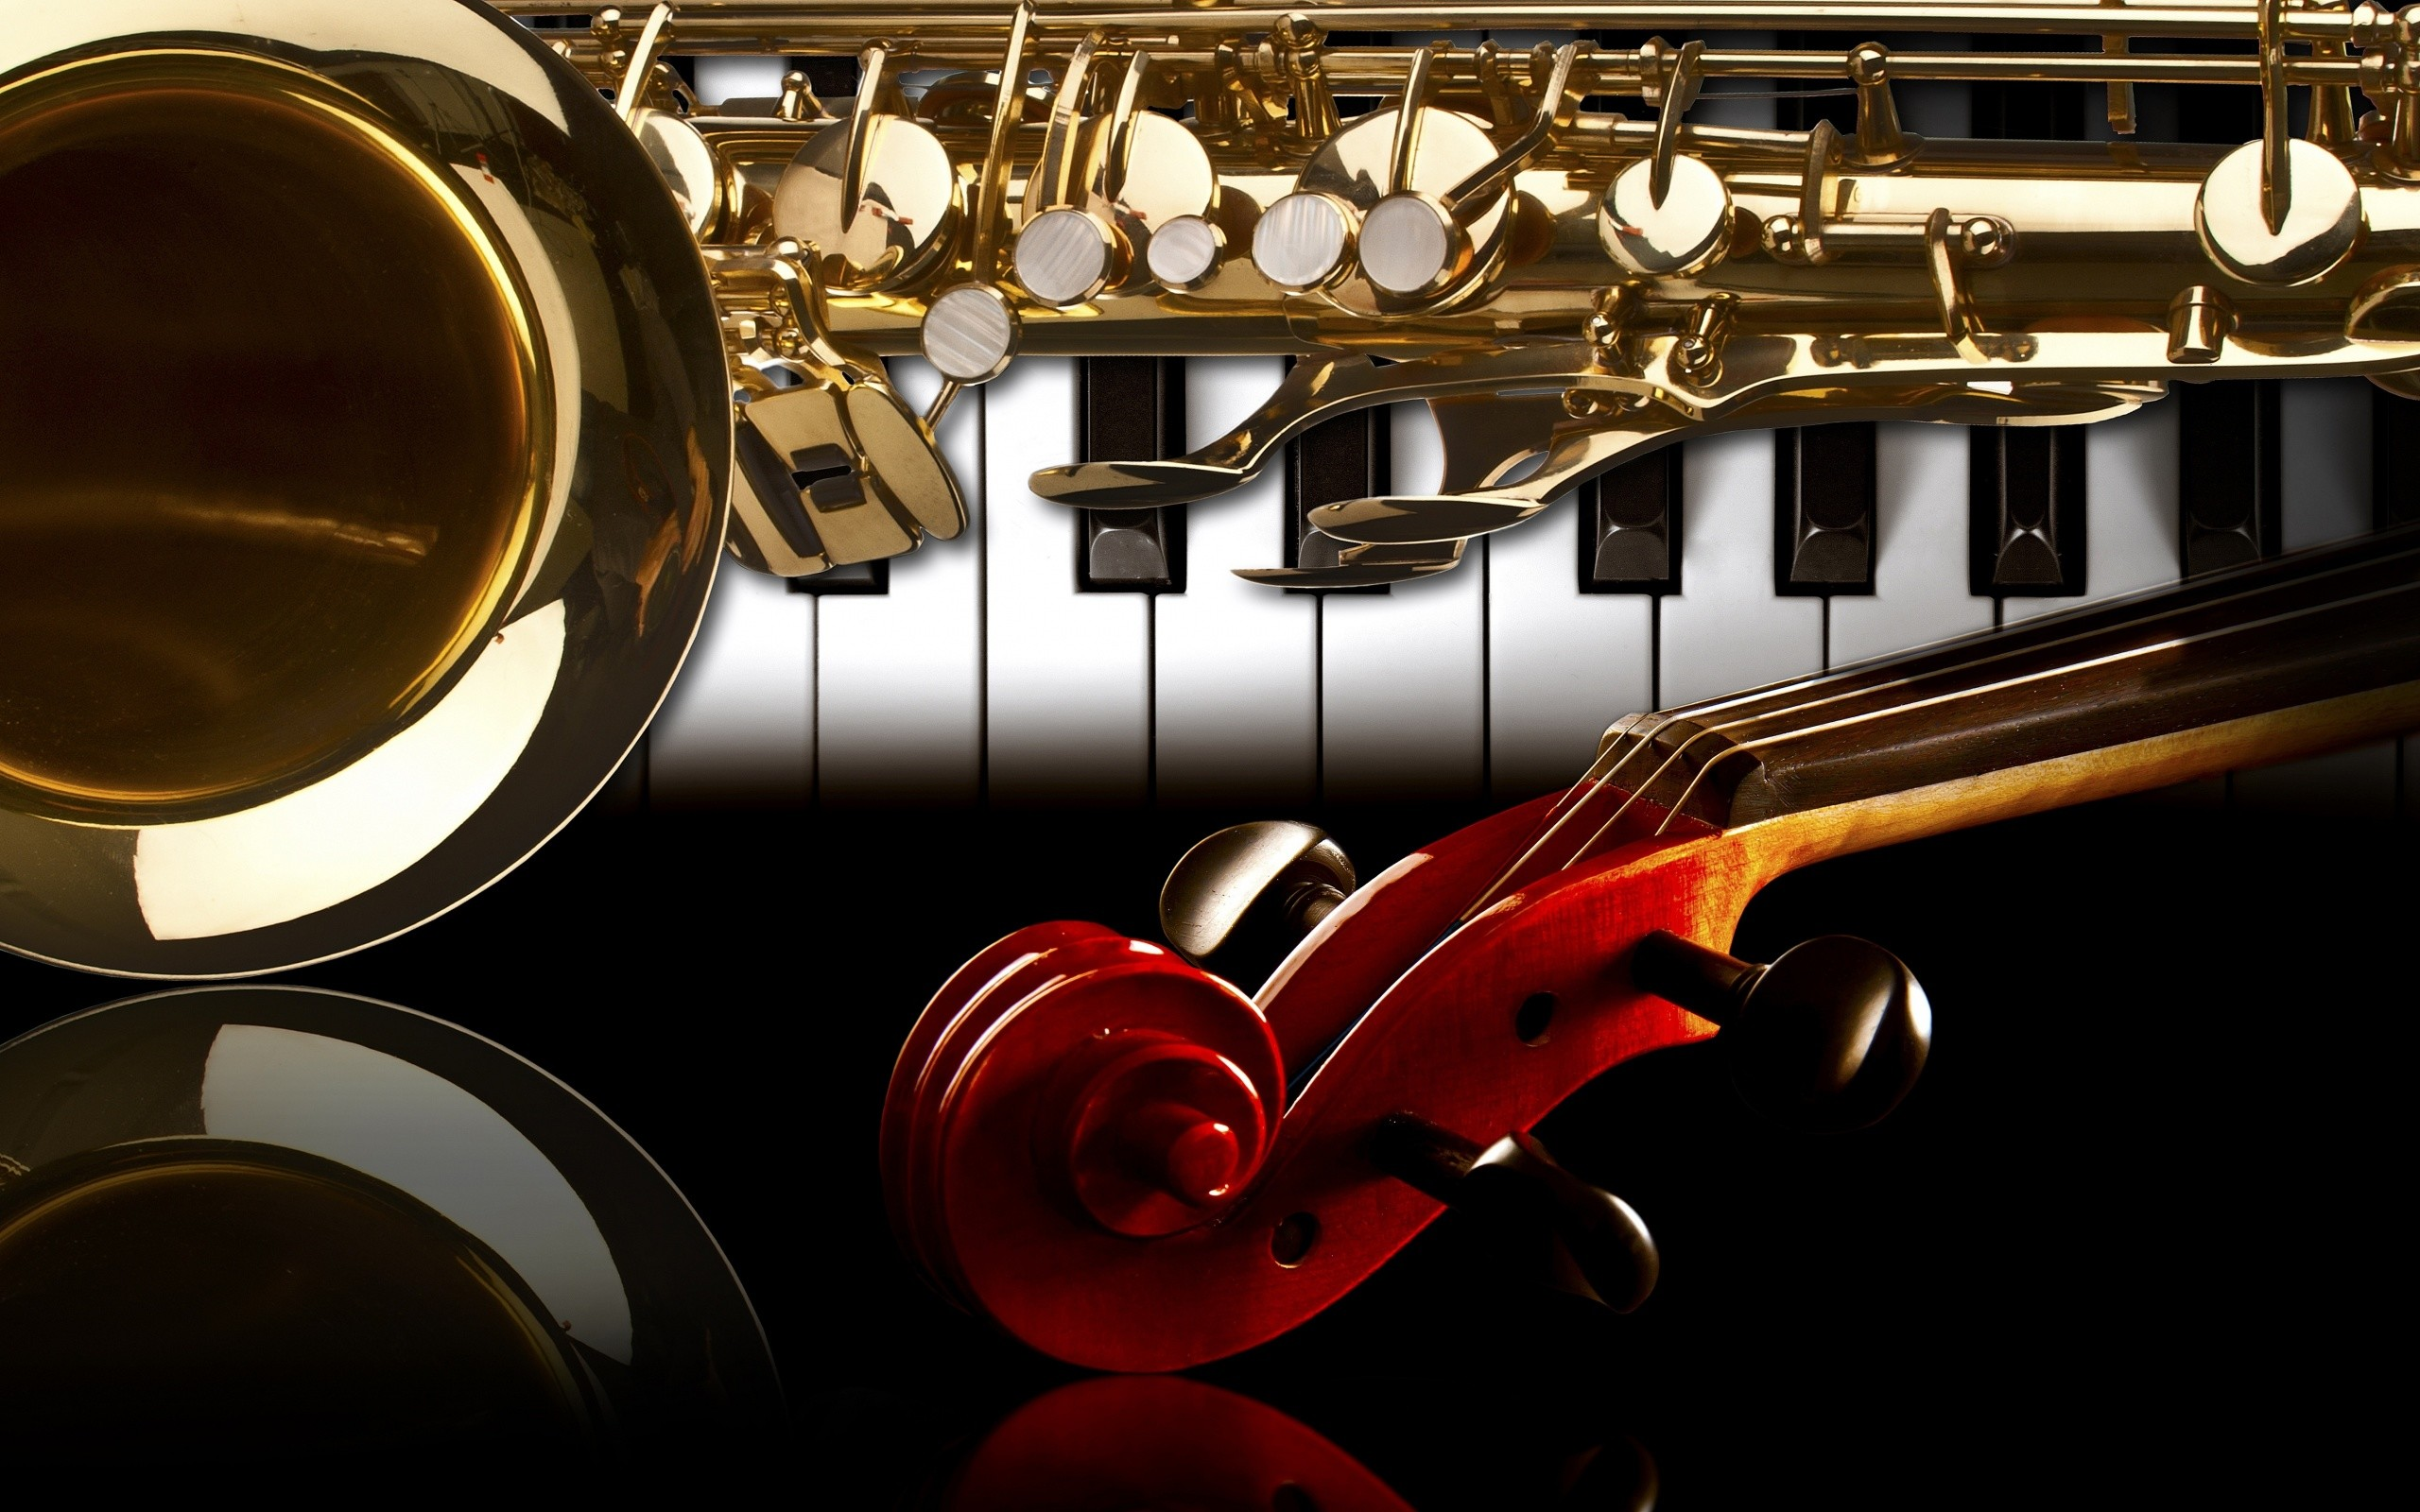 instrument music instruments musical background band vertical